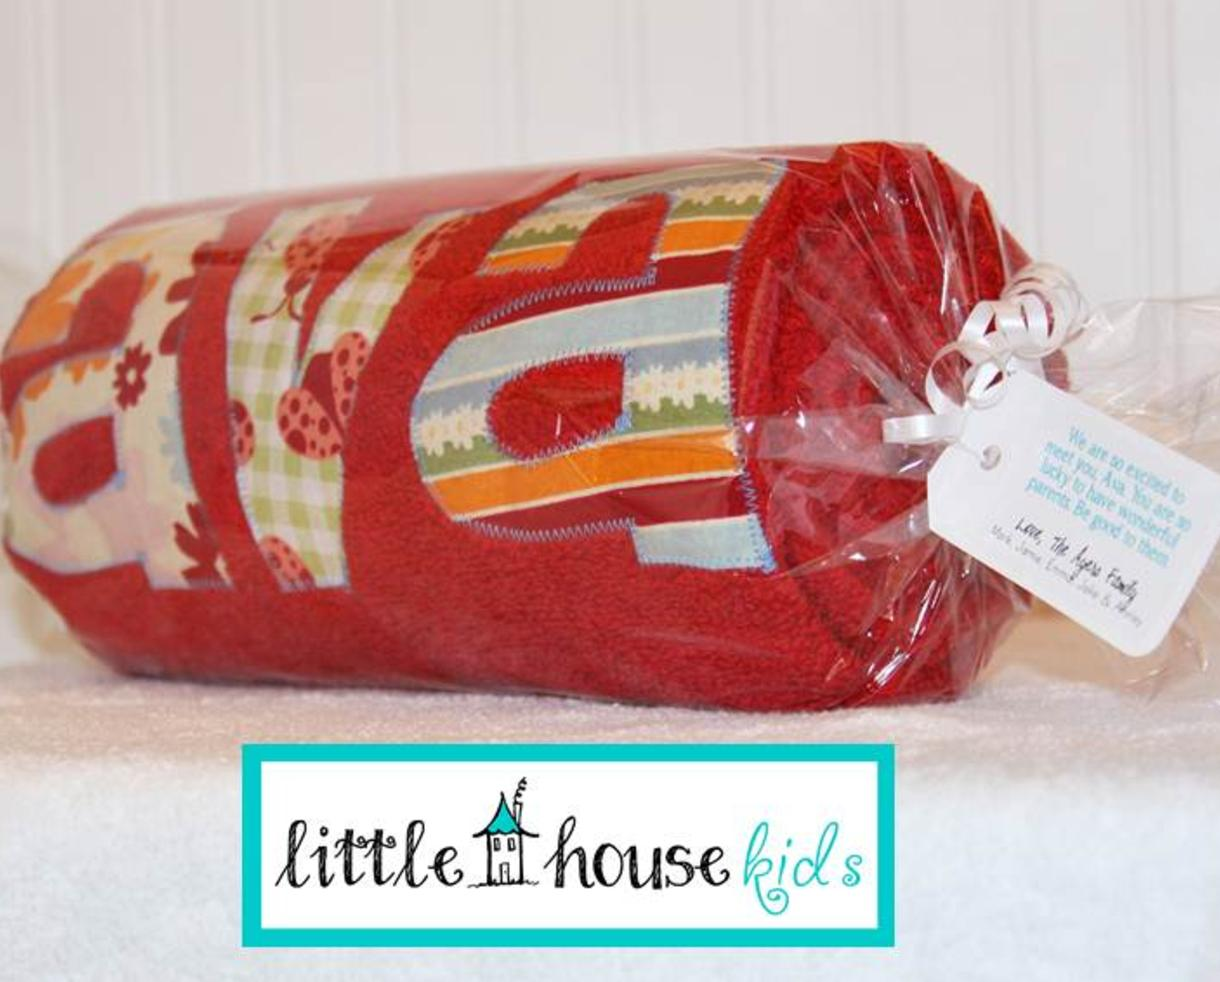 $30 for Personalized Kids Towel from Little House Kids - Shipped! ($40 value -25% off)